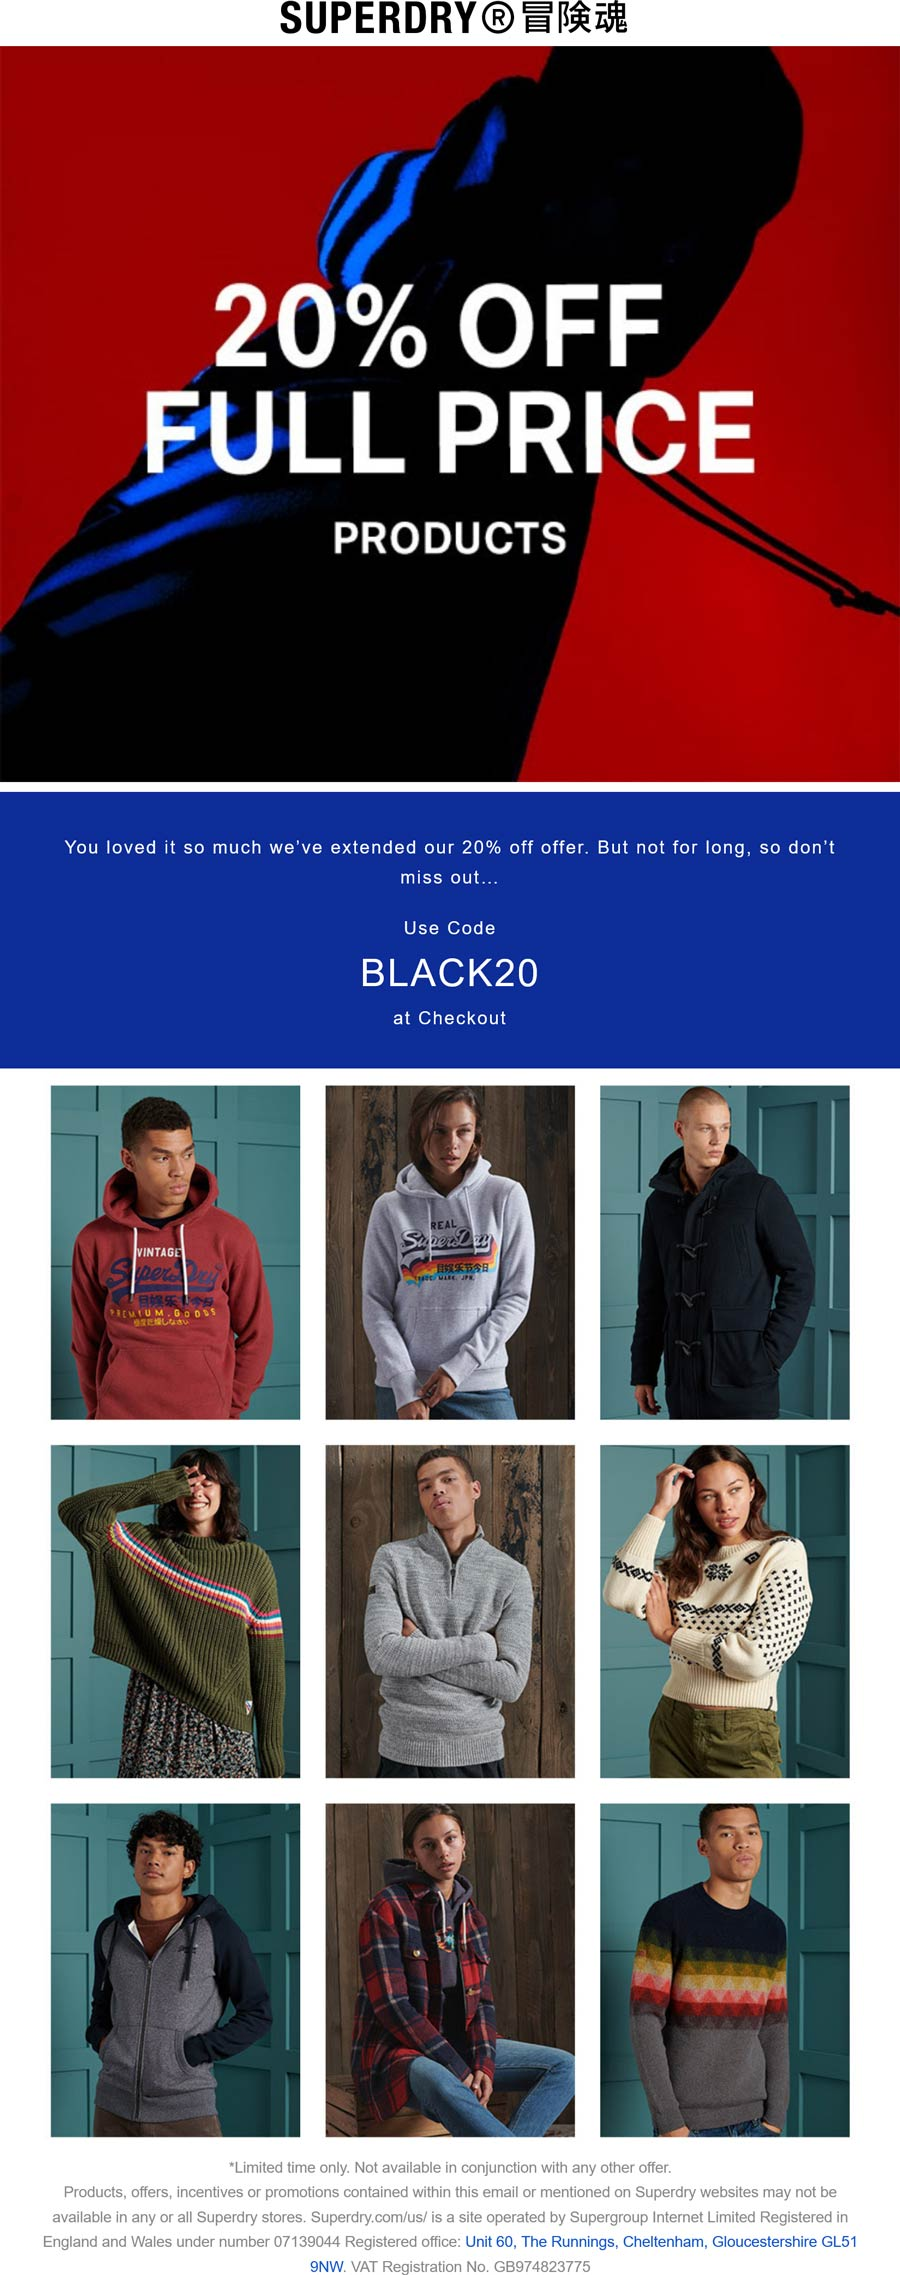 Superdry stores Coupon  20% off at Superdry via promo code BLACK20 #superdry